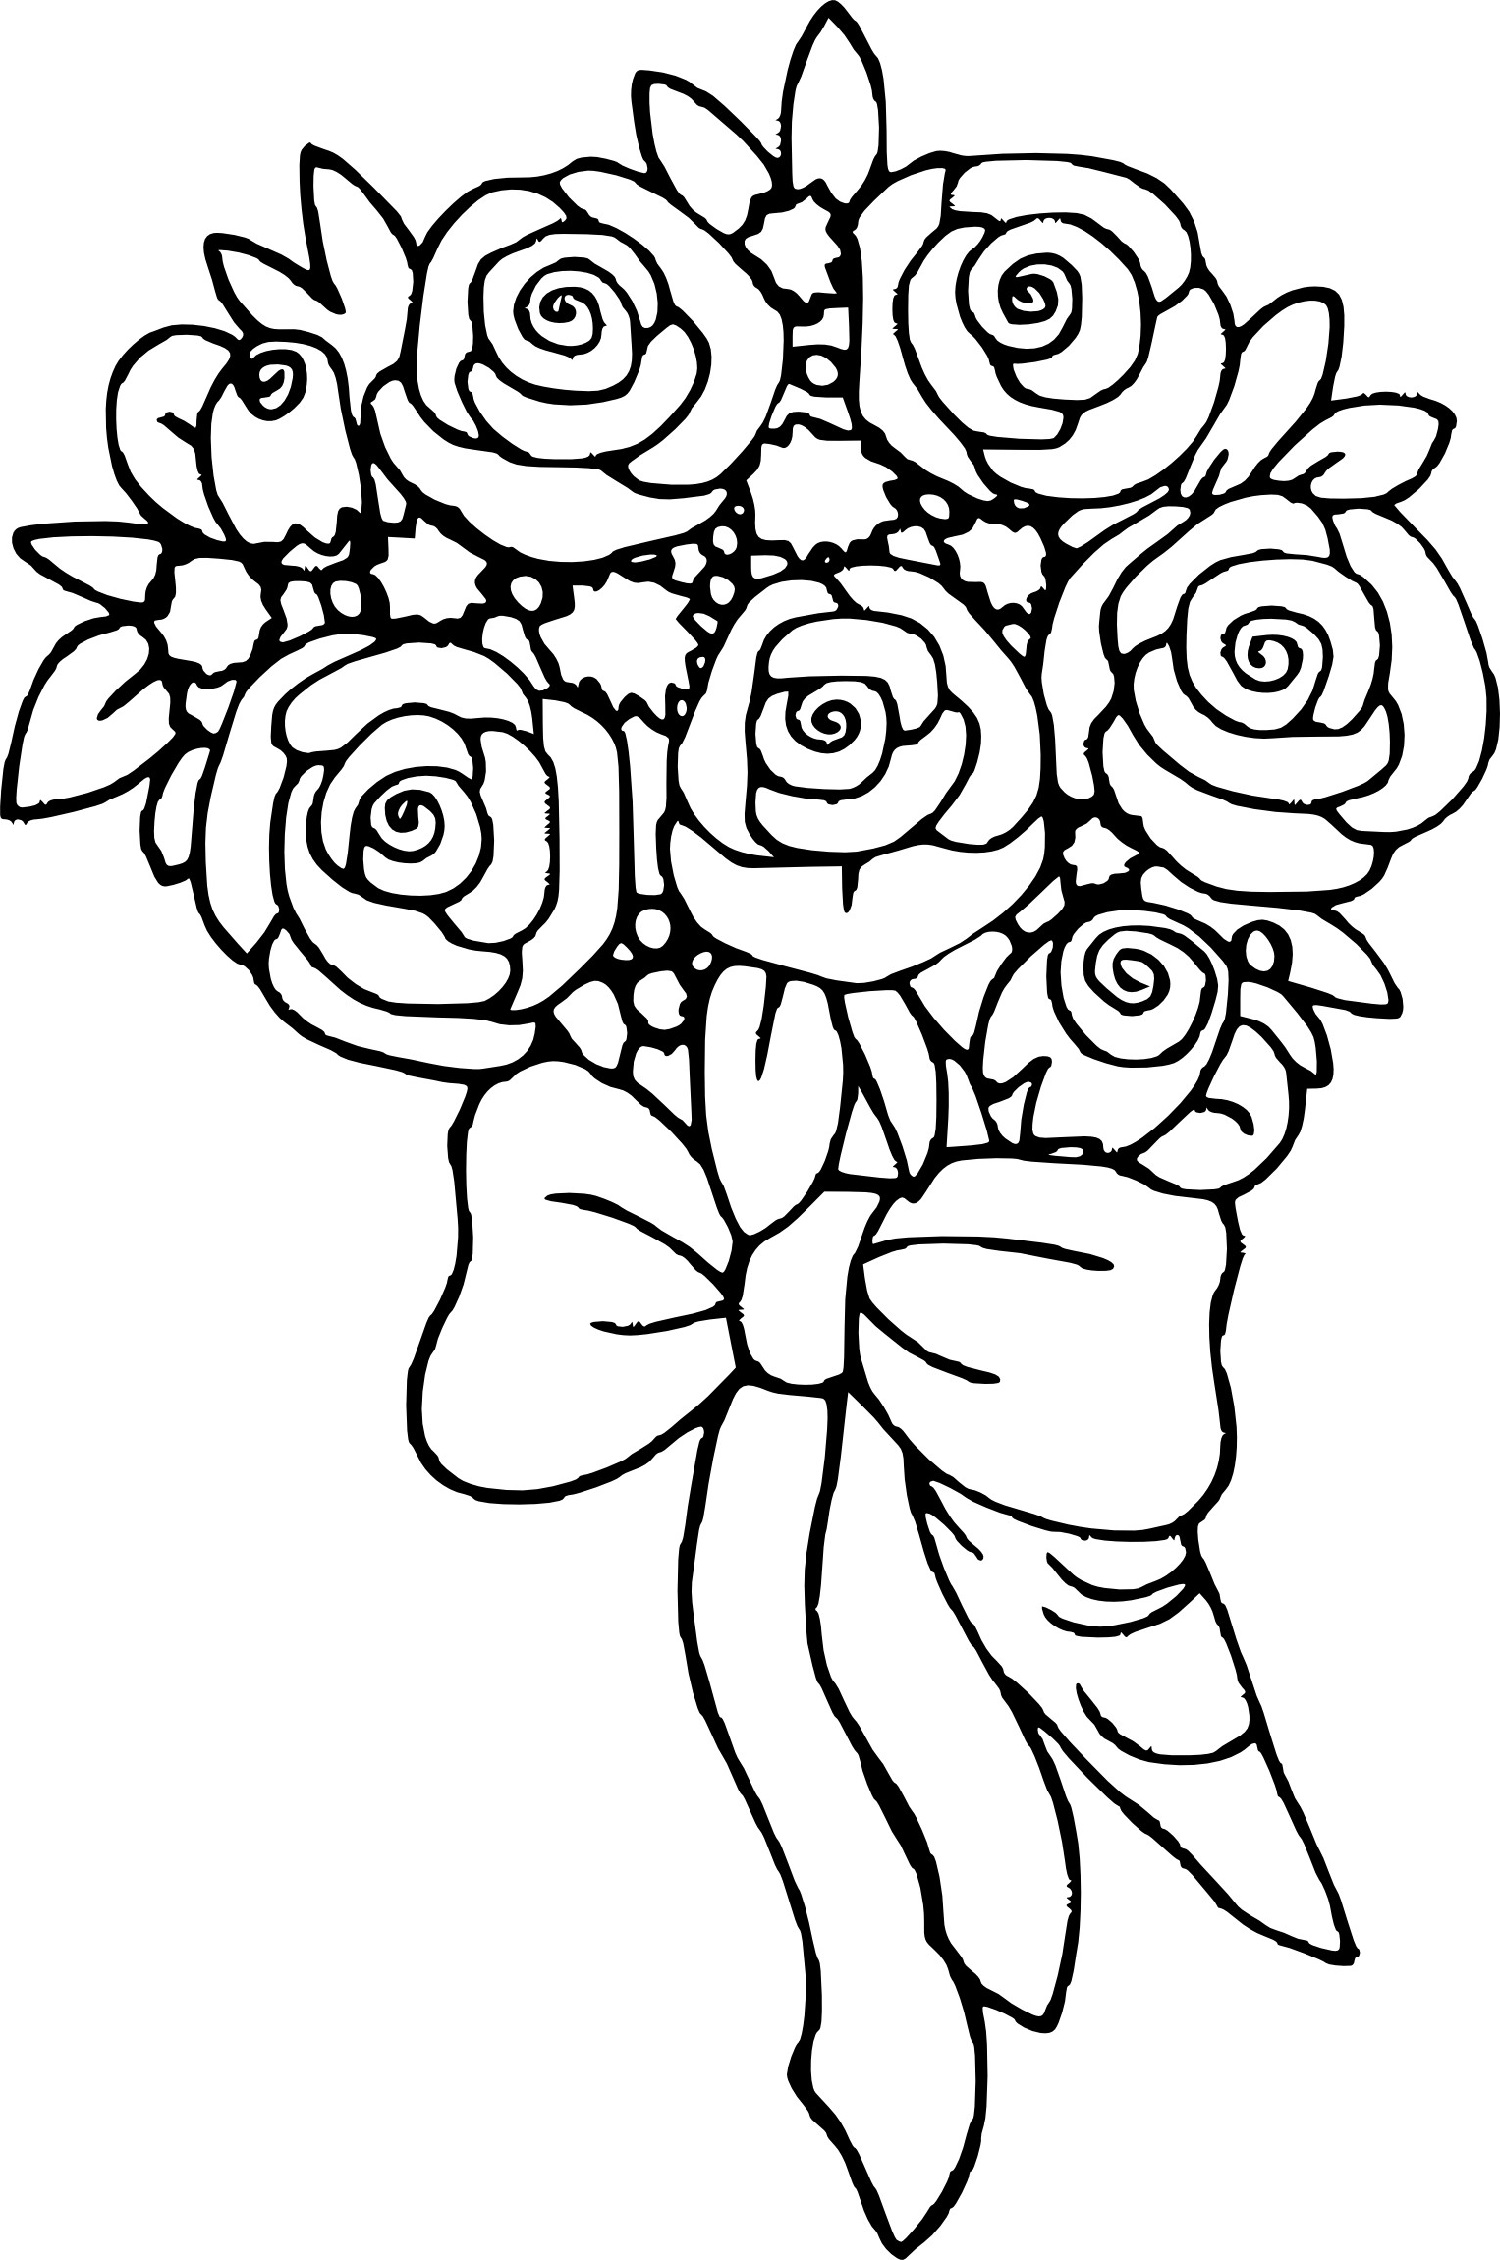 coloring pictures of bouquet of flowers adult coloring printable flower bouquet woo jr kids of pictures flowers bouquet coloring of